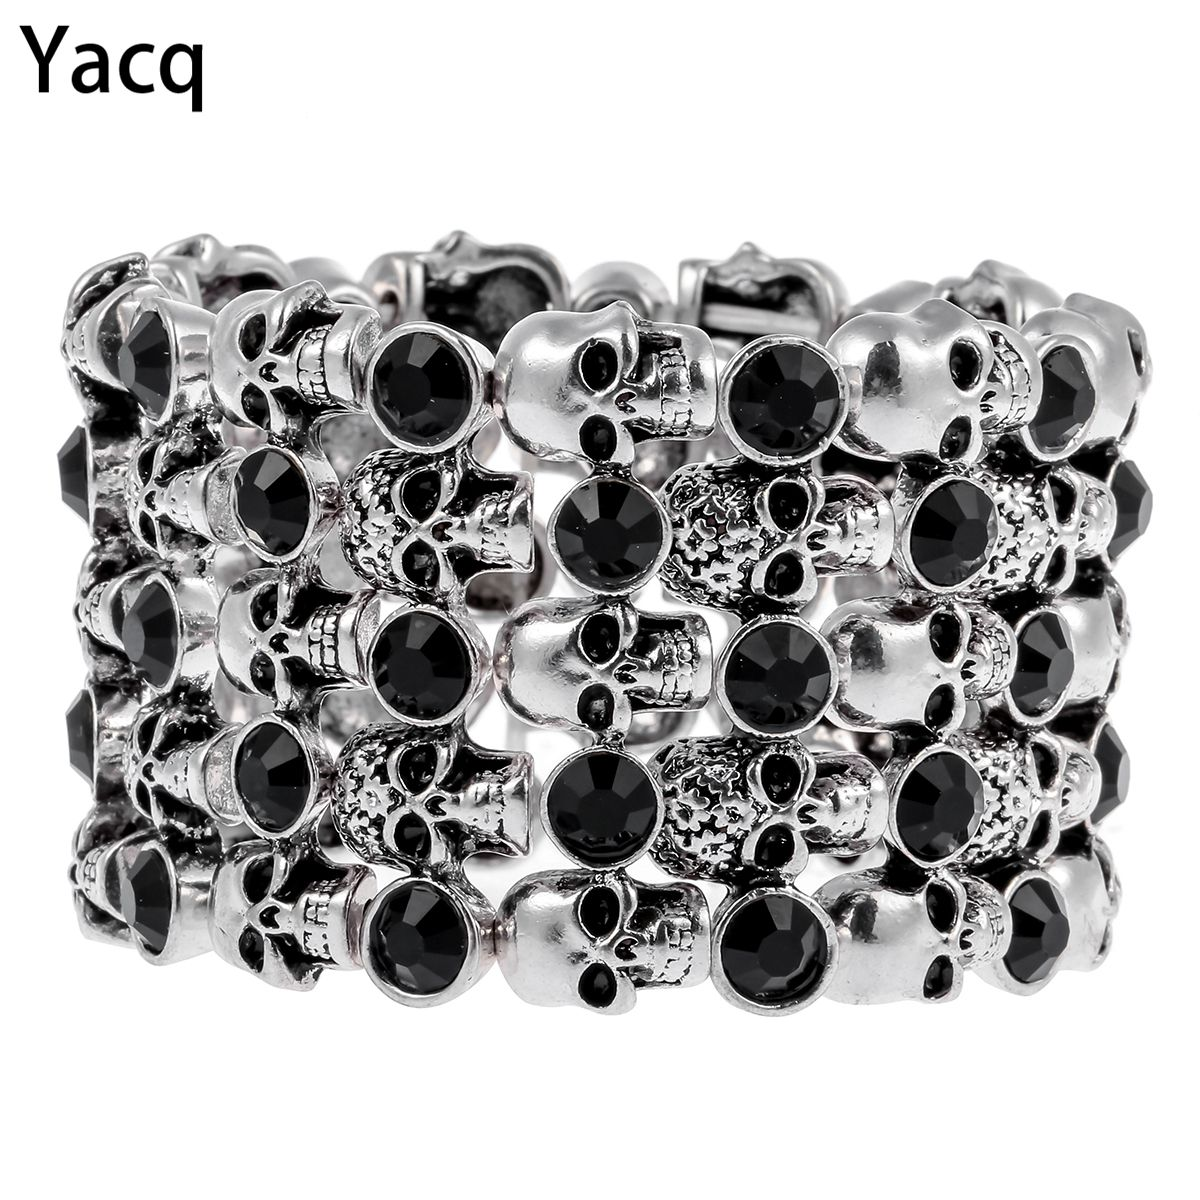 YACQ Skull Skeleton Stretch Cuff Bracelet for Women Biker <font><b>Bling</b></font> Crystal Jewelry Antique Silver Color Wholesale Dropshipping D07